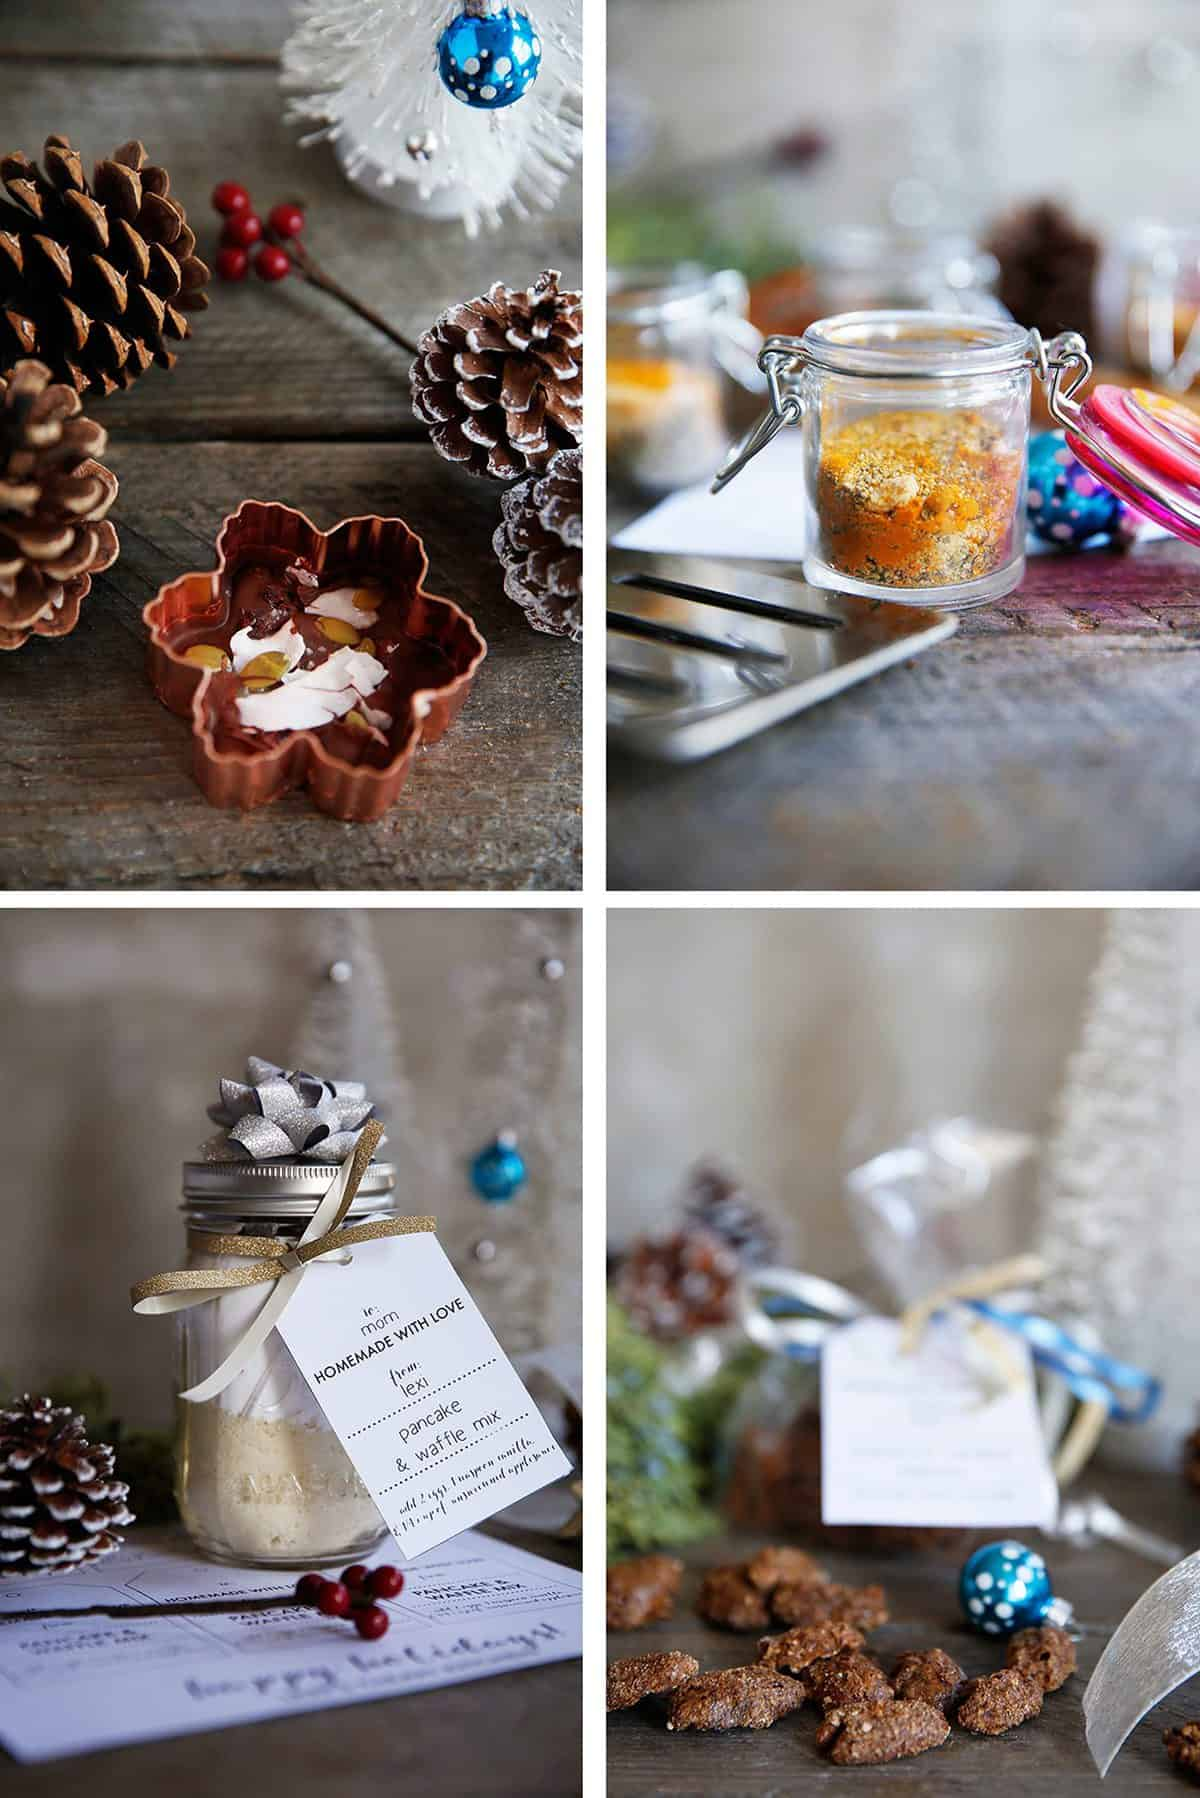 The ultimate foodie holiday gift basket lexis clean kitchen diy giftweek negle Images